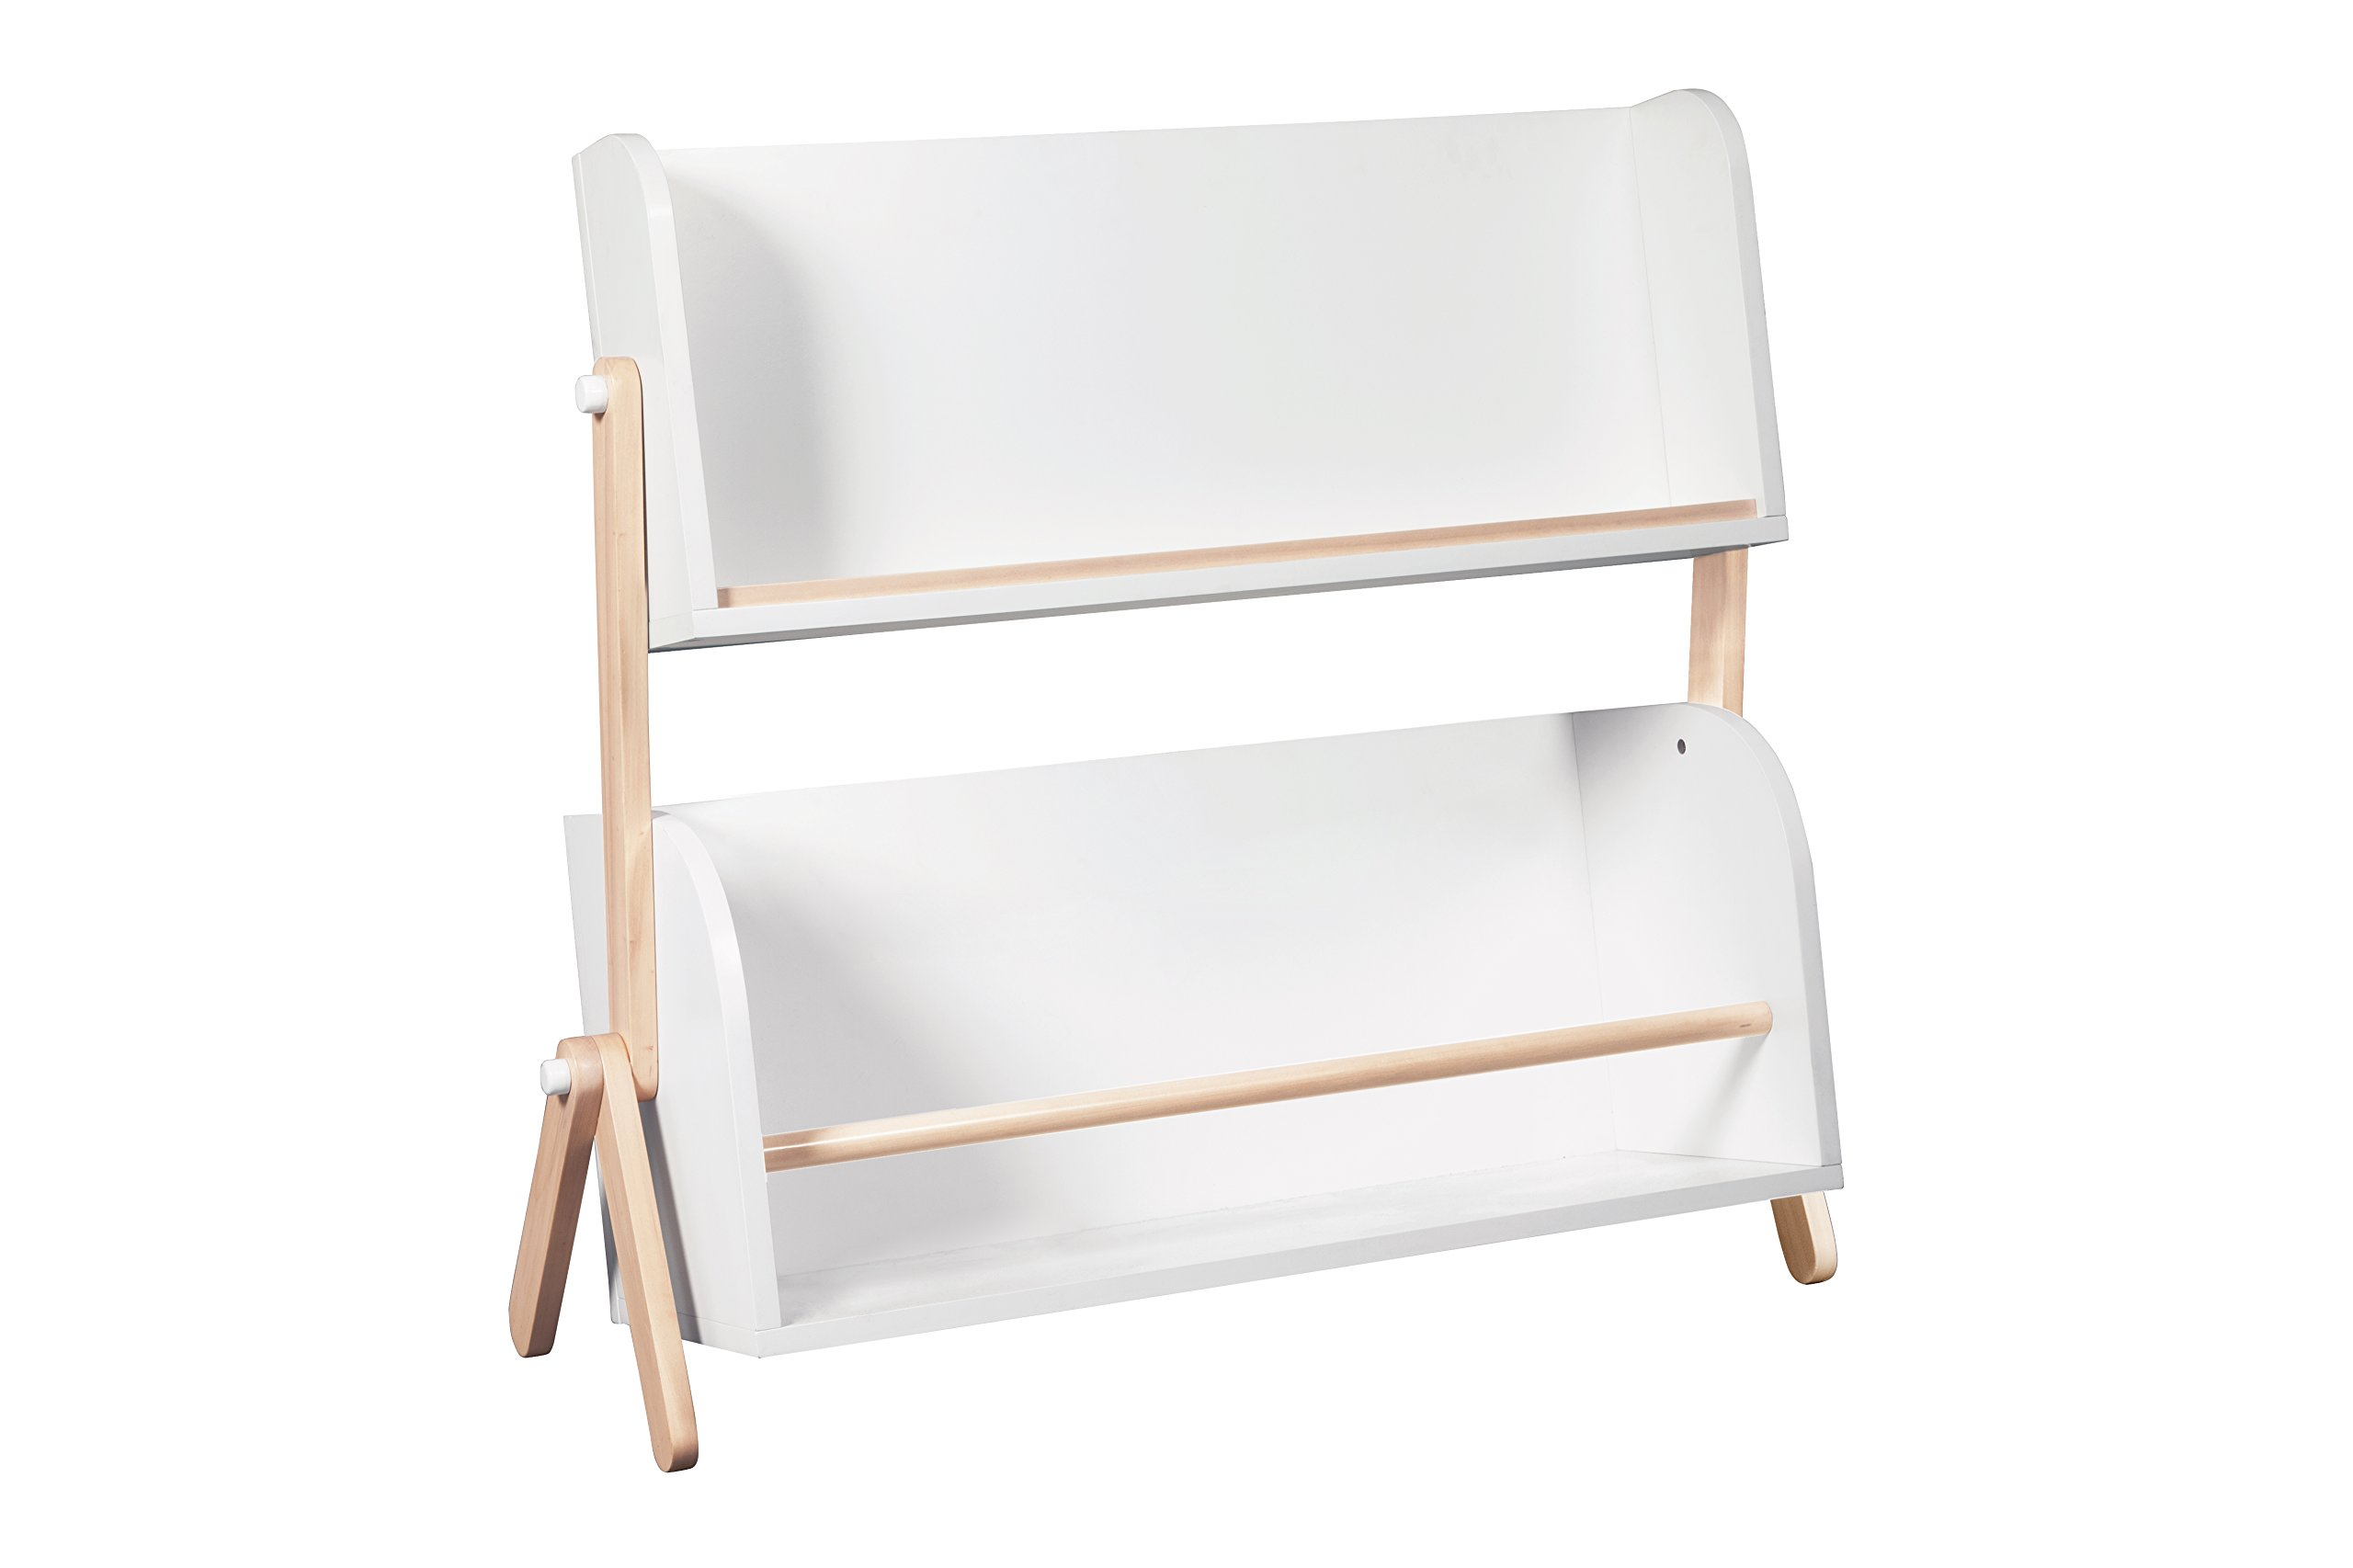 Babyletto Tally Storage and Bookshelf, White/Washed Natural